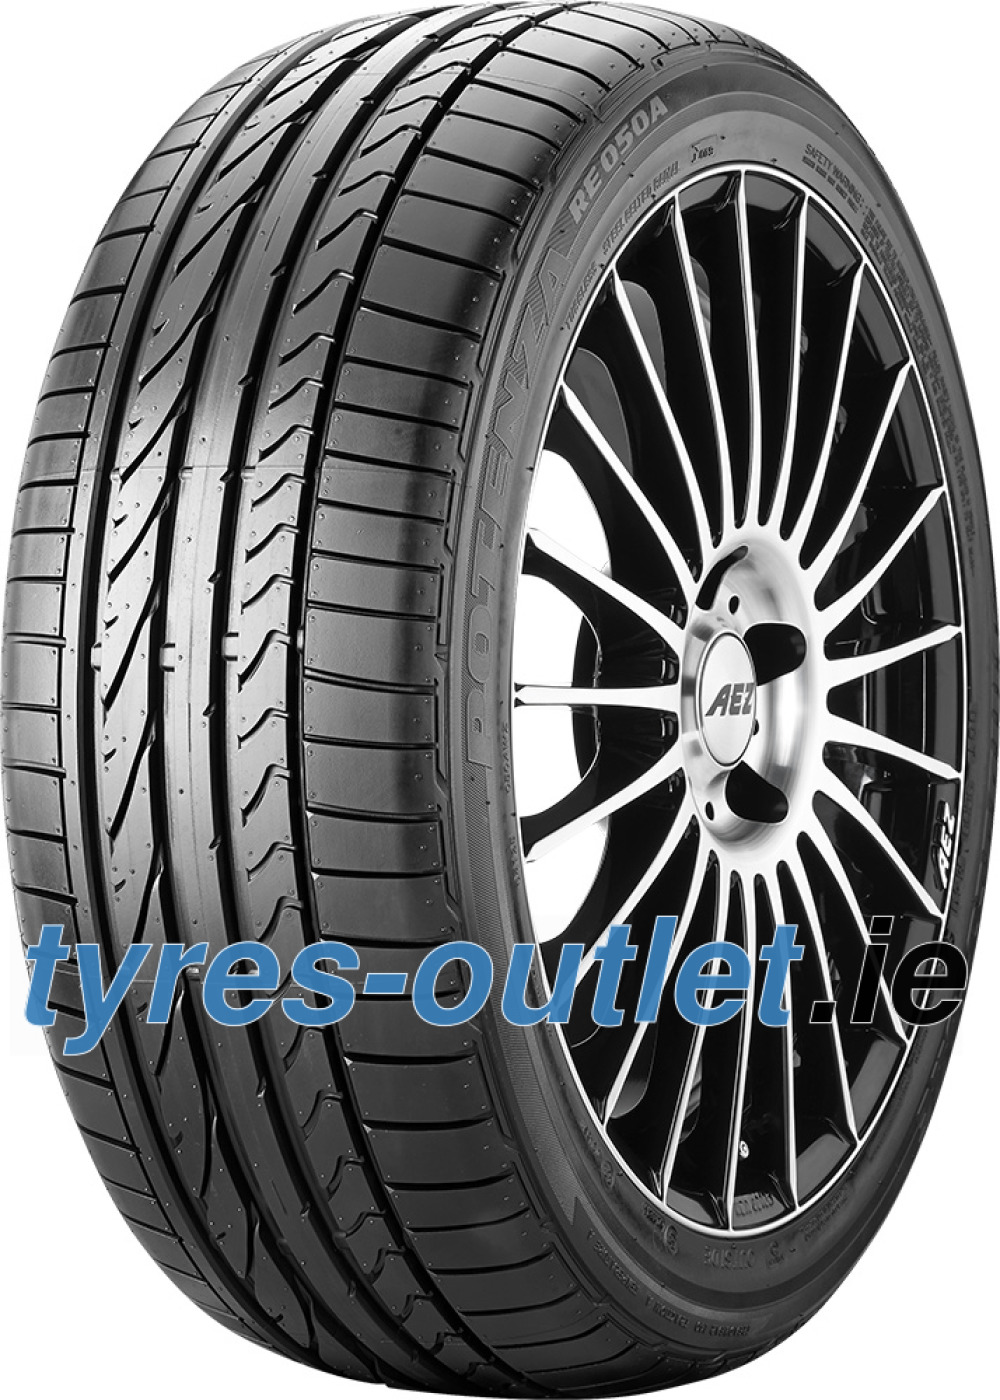 Bridgestone Potenza RE 050 A ( 245/35 ZR20 (91Y) with rim protection (MFS) )